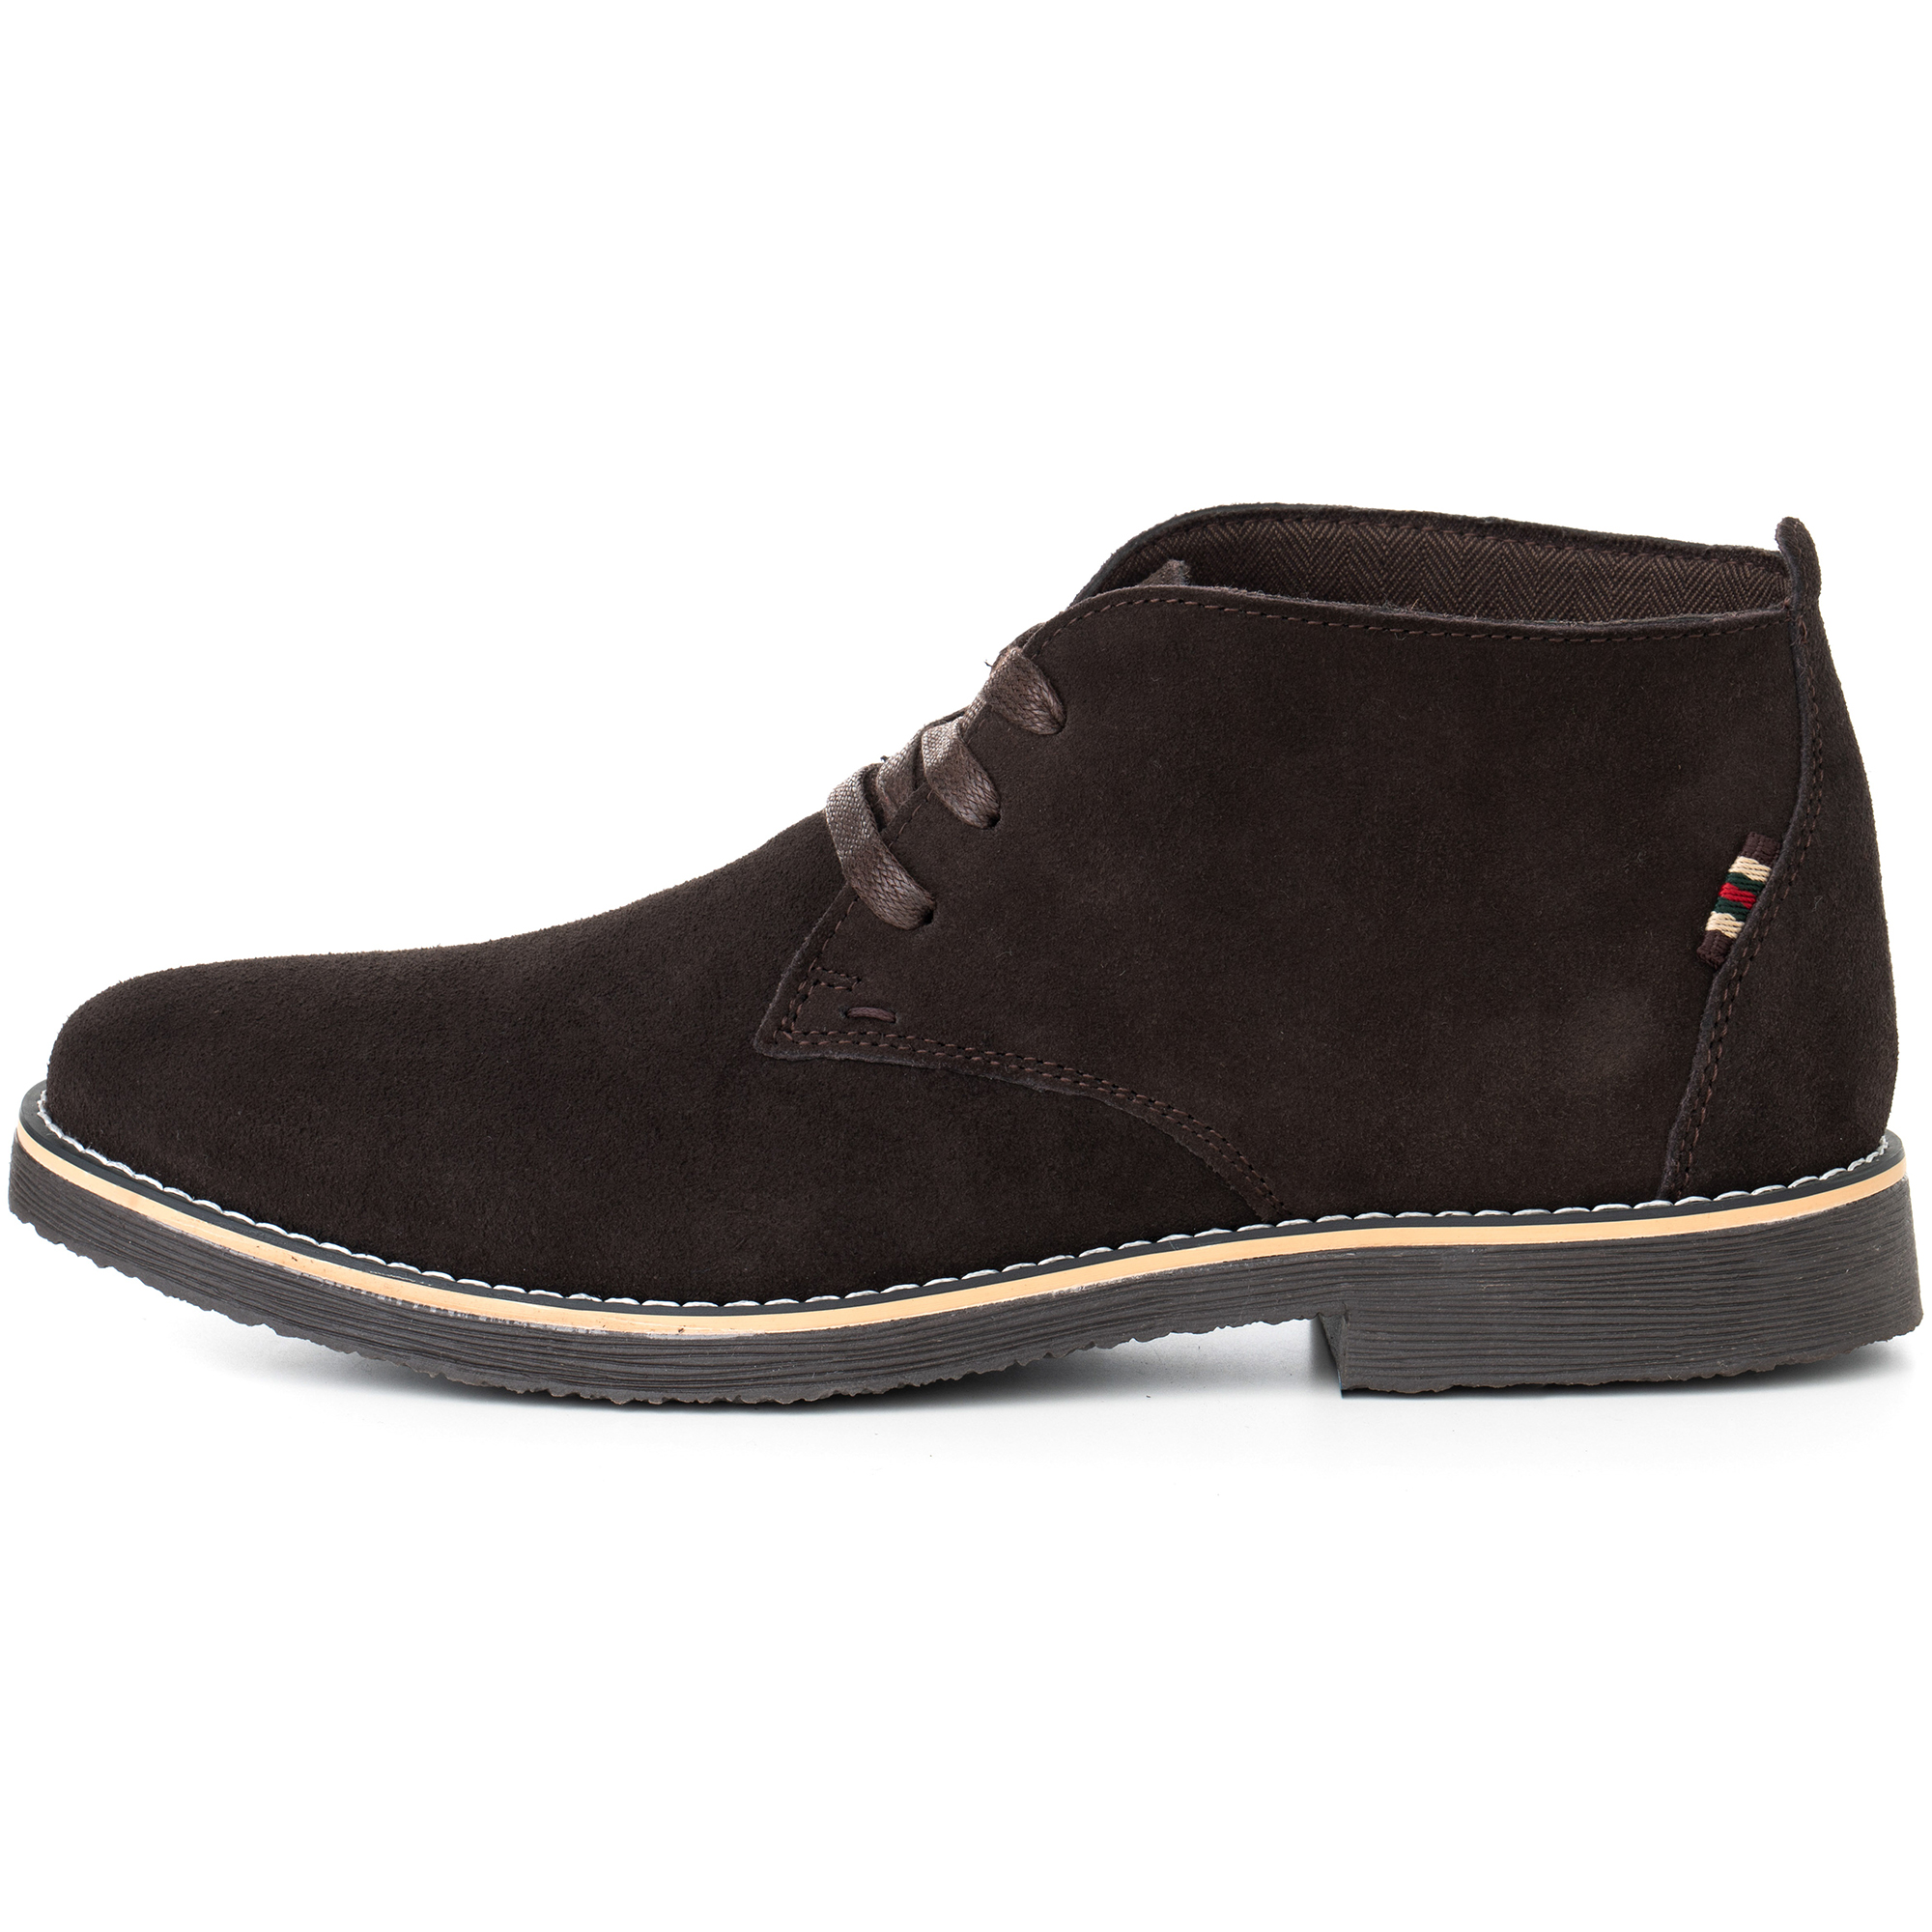 Alpine-Swiss-Beck-Mens-Suede-Chukka-Desert-Boots-Lace-Up-Shoes-Crepe-Sole-Oxford miniature 19